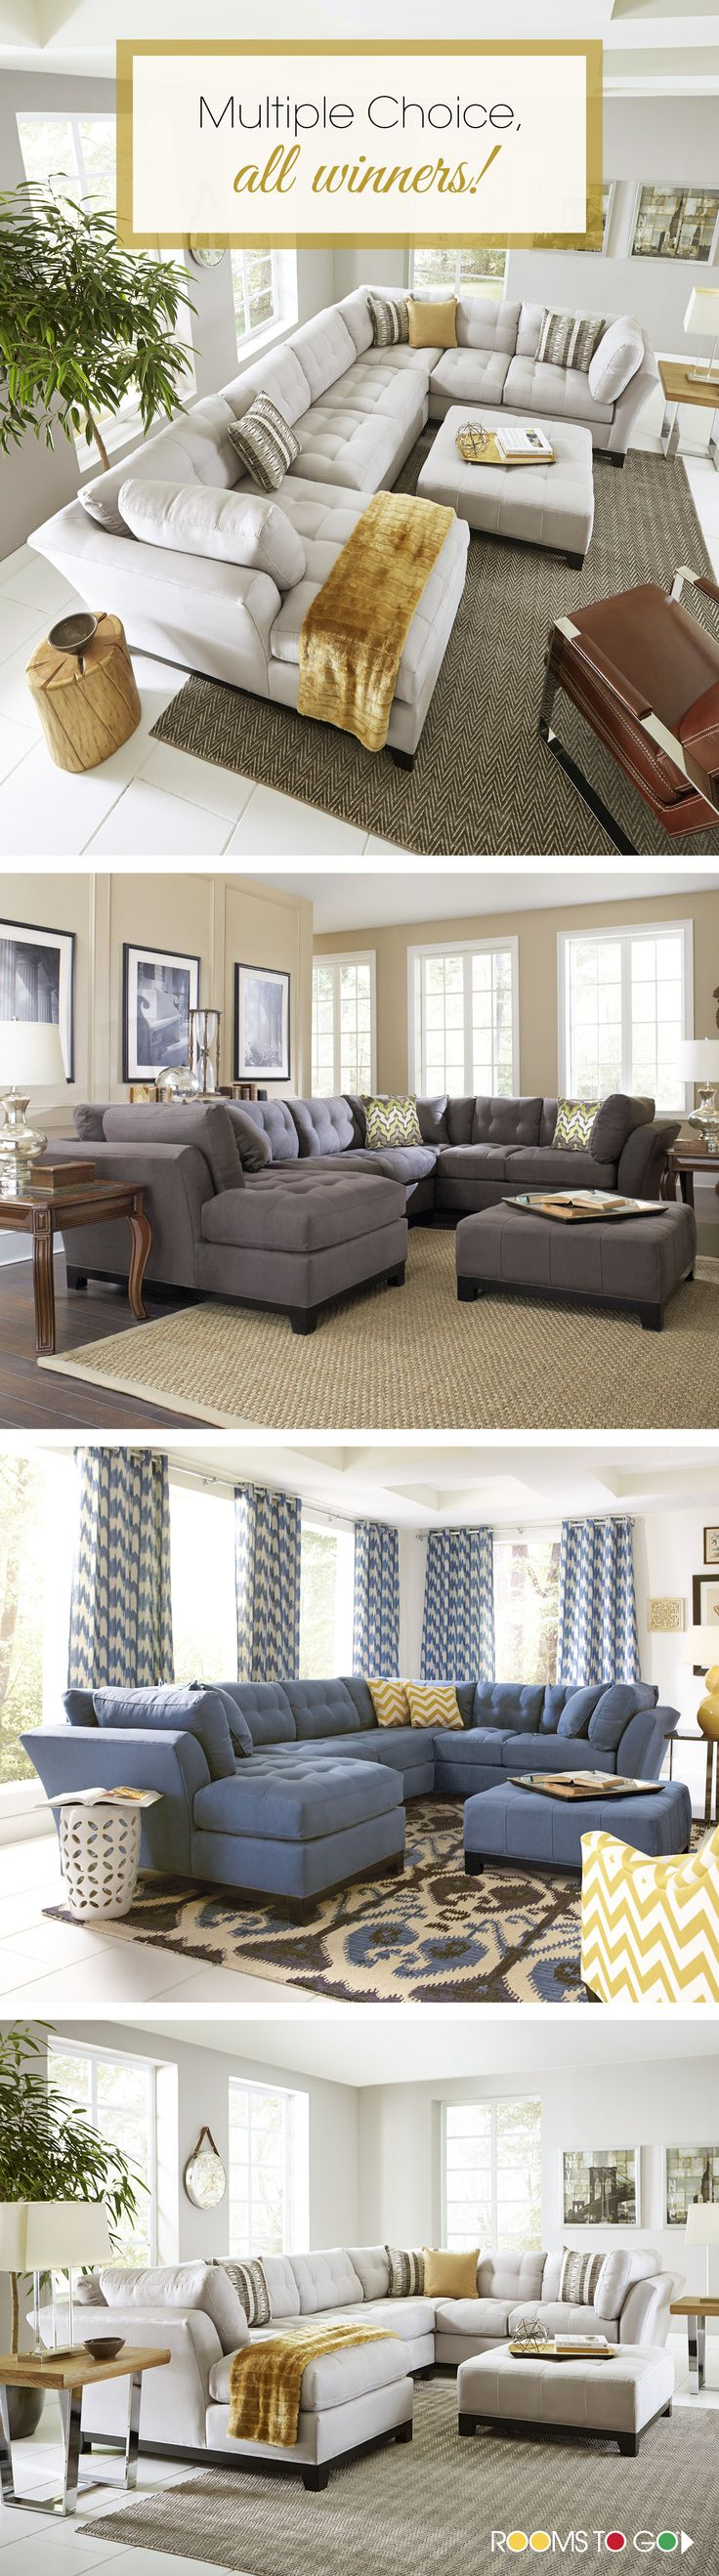 1000 Ideas About Rent To Own Homes On Pinterest Homes Formal